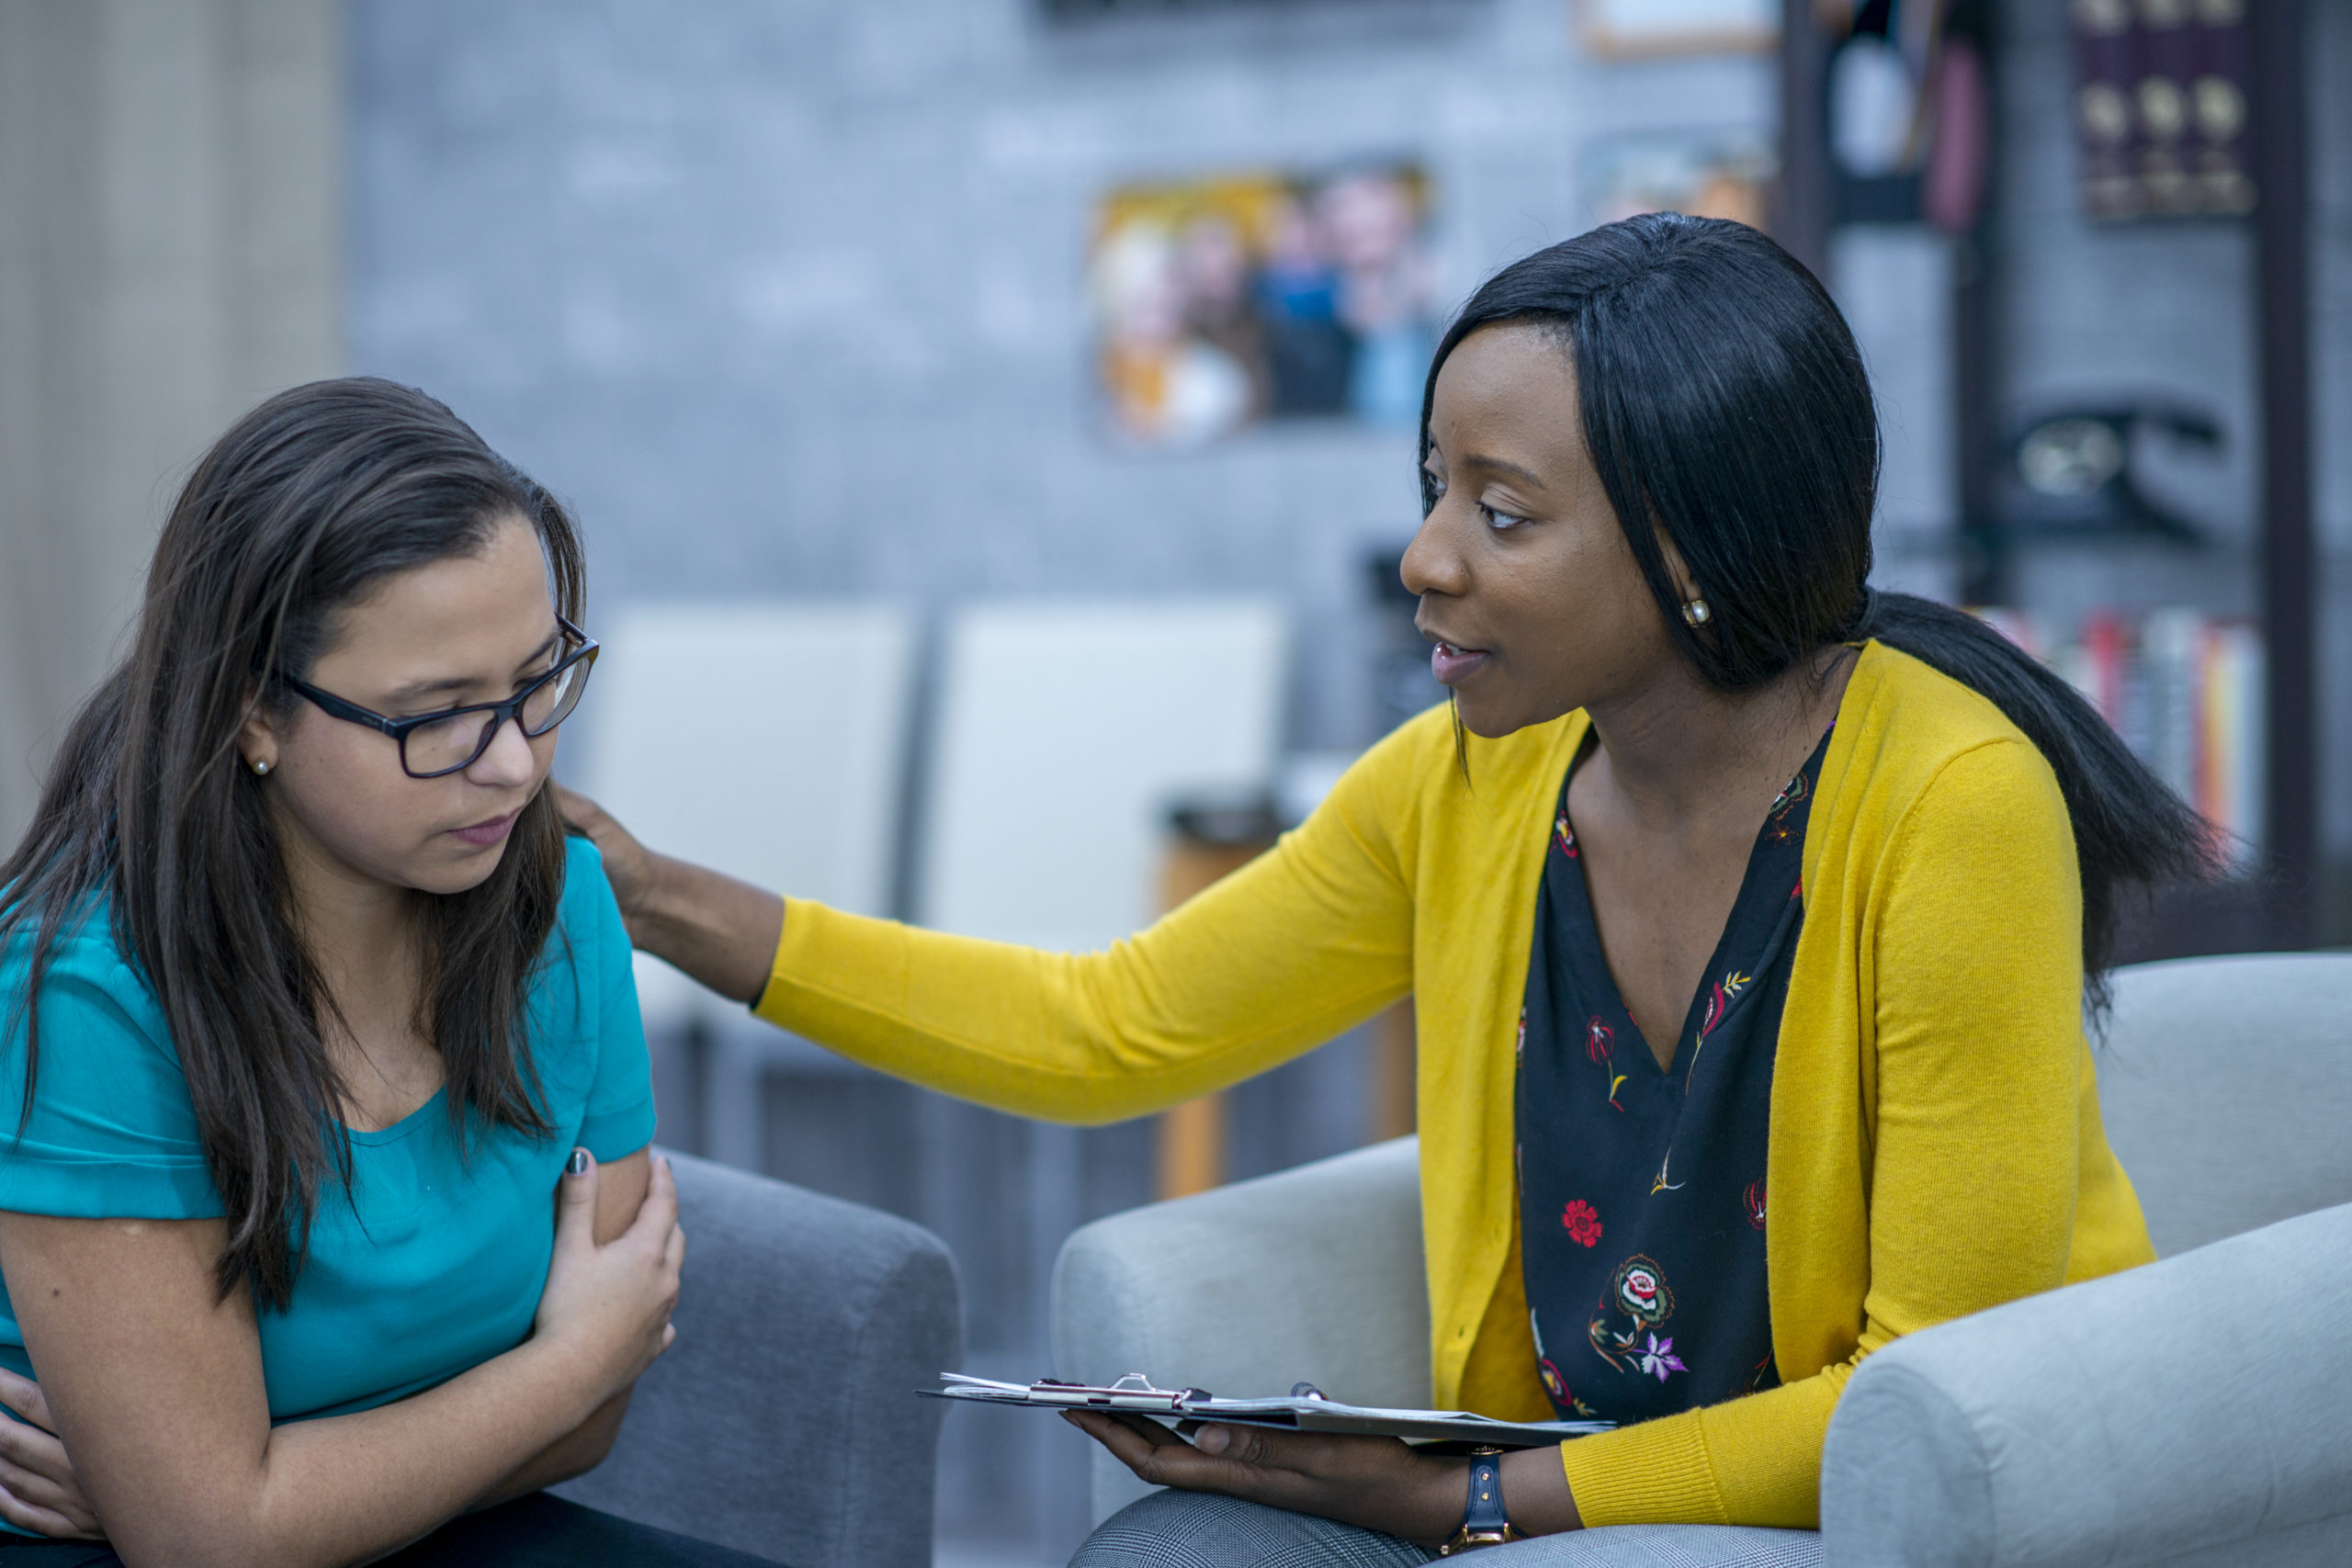 Clinical mental health counselor counsels female client